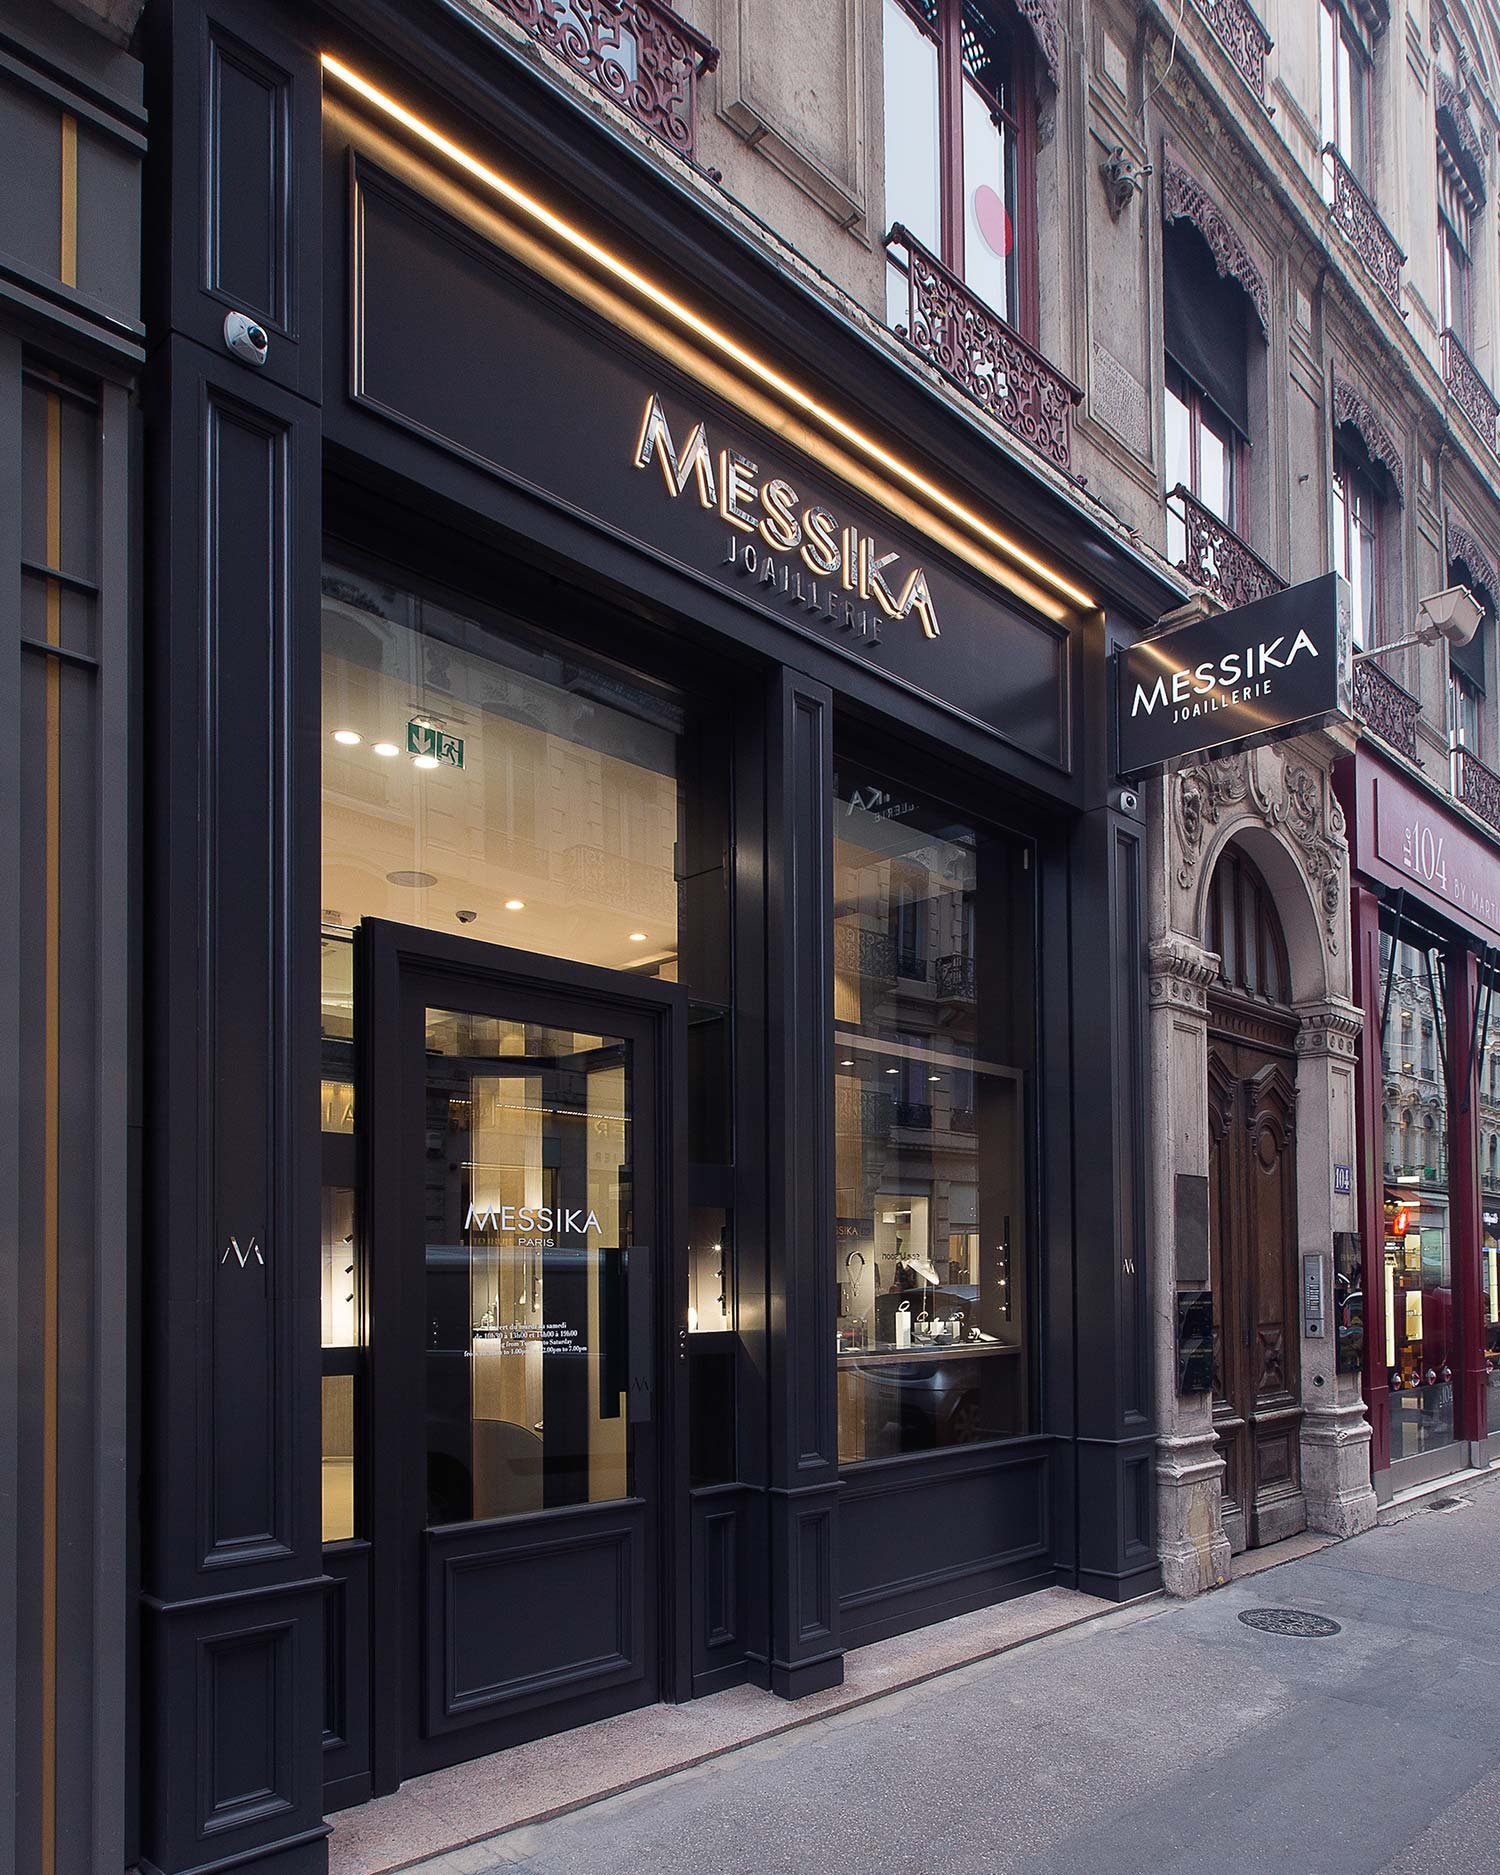 Boutique Messika